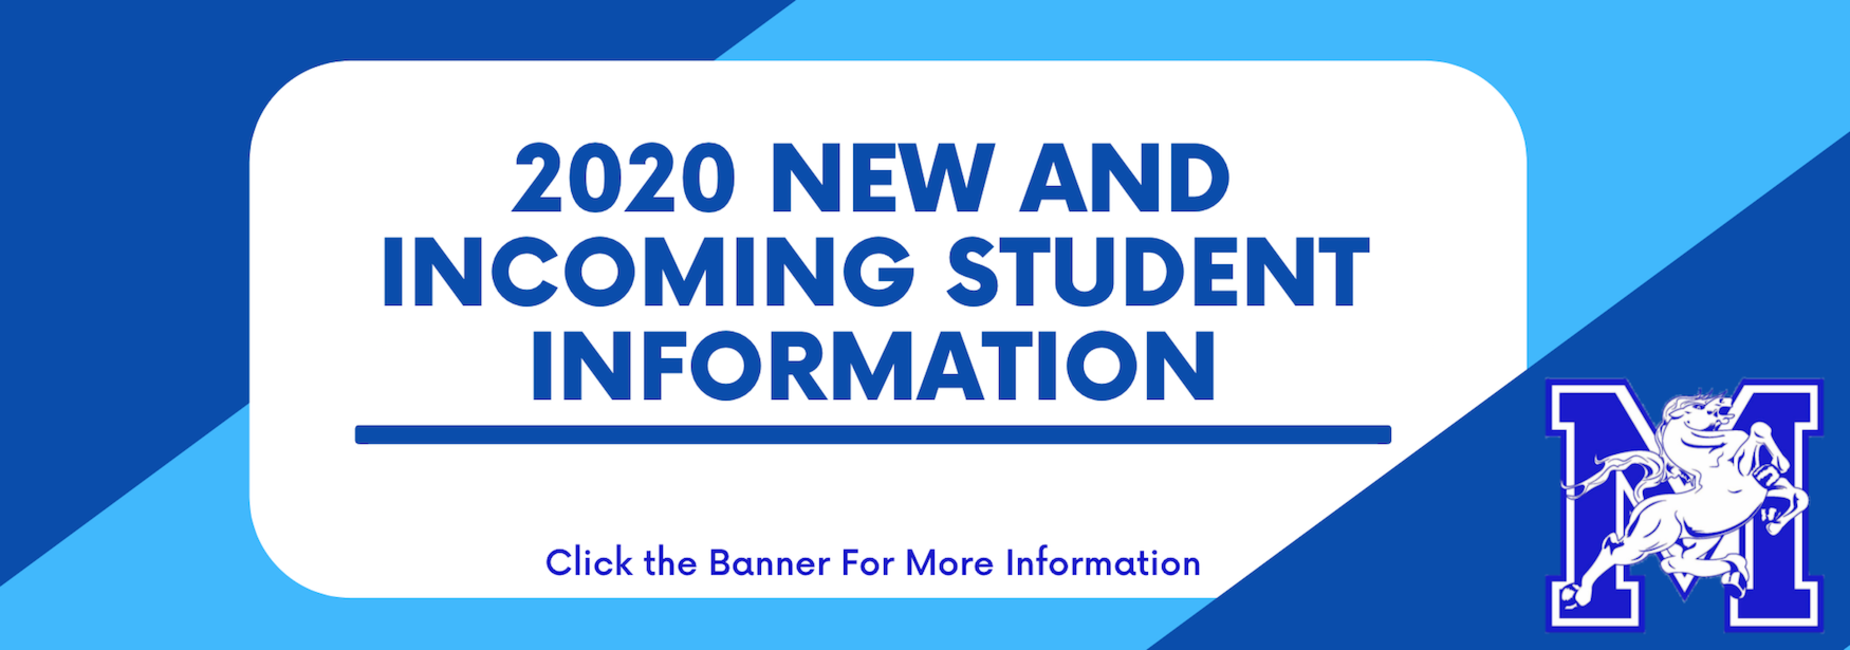 2020 New and Incoming Student Information Banner